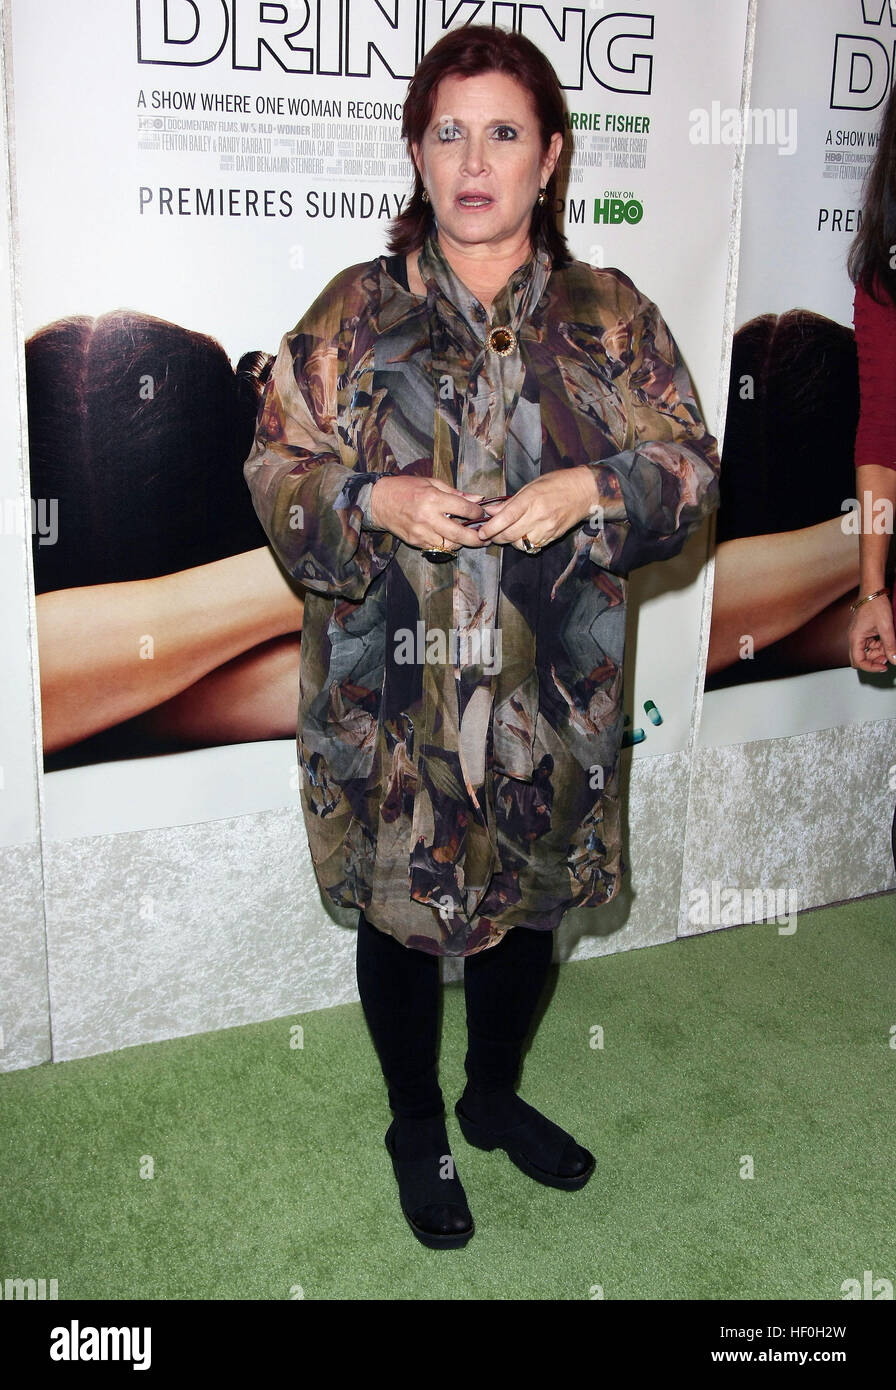 FILE PIC: Hollywood, CA, USA. 7th Dec, 2010. 27 December 2016 - Carrie Fisher, the iconic actress who portrayed - Stock Image